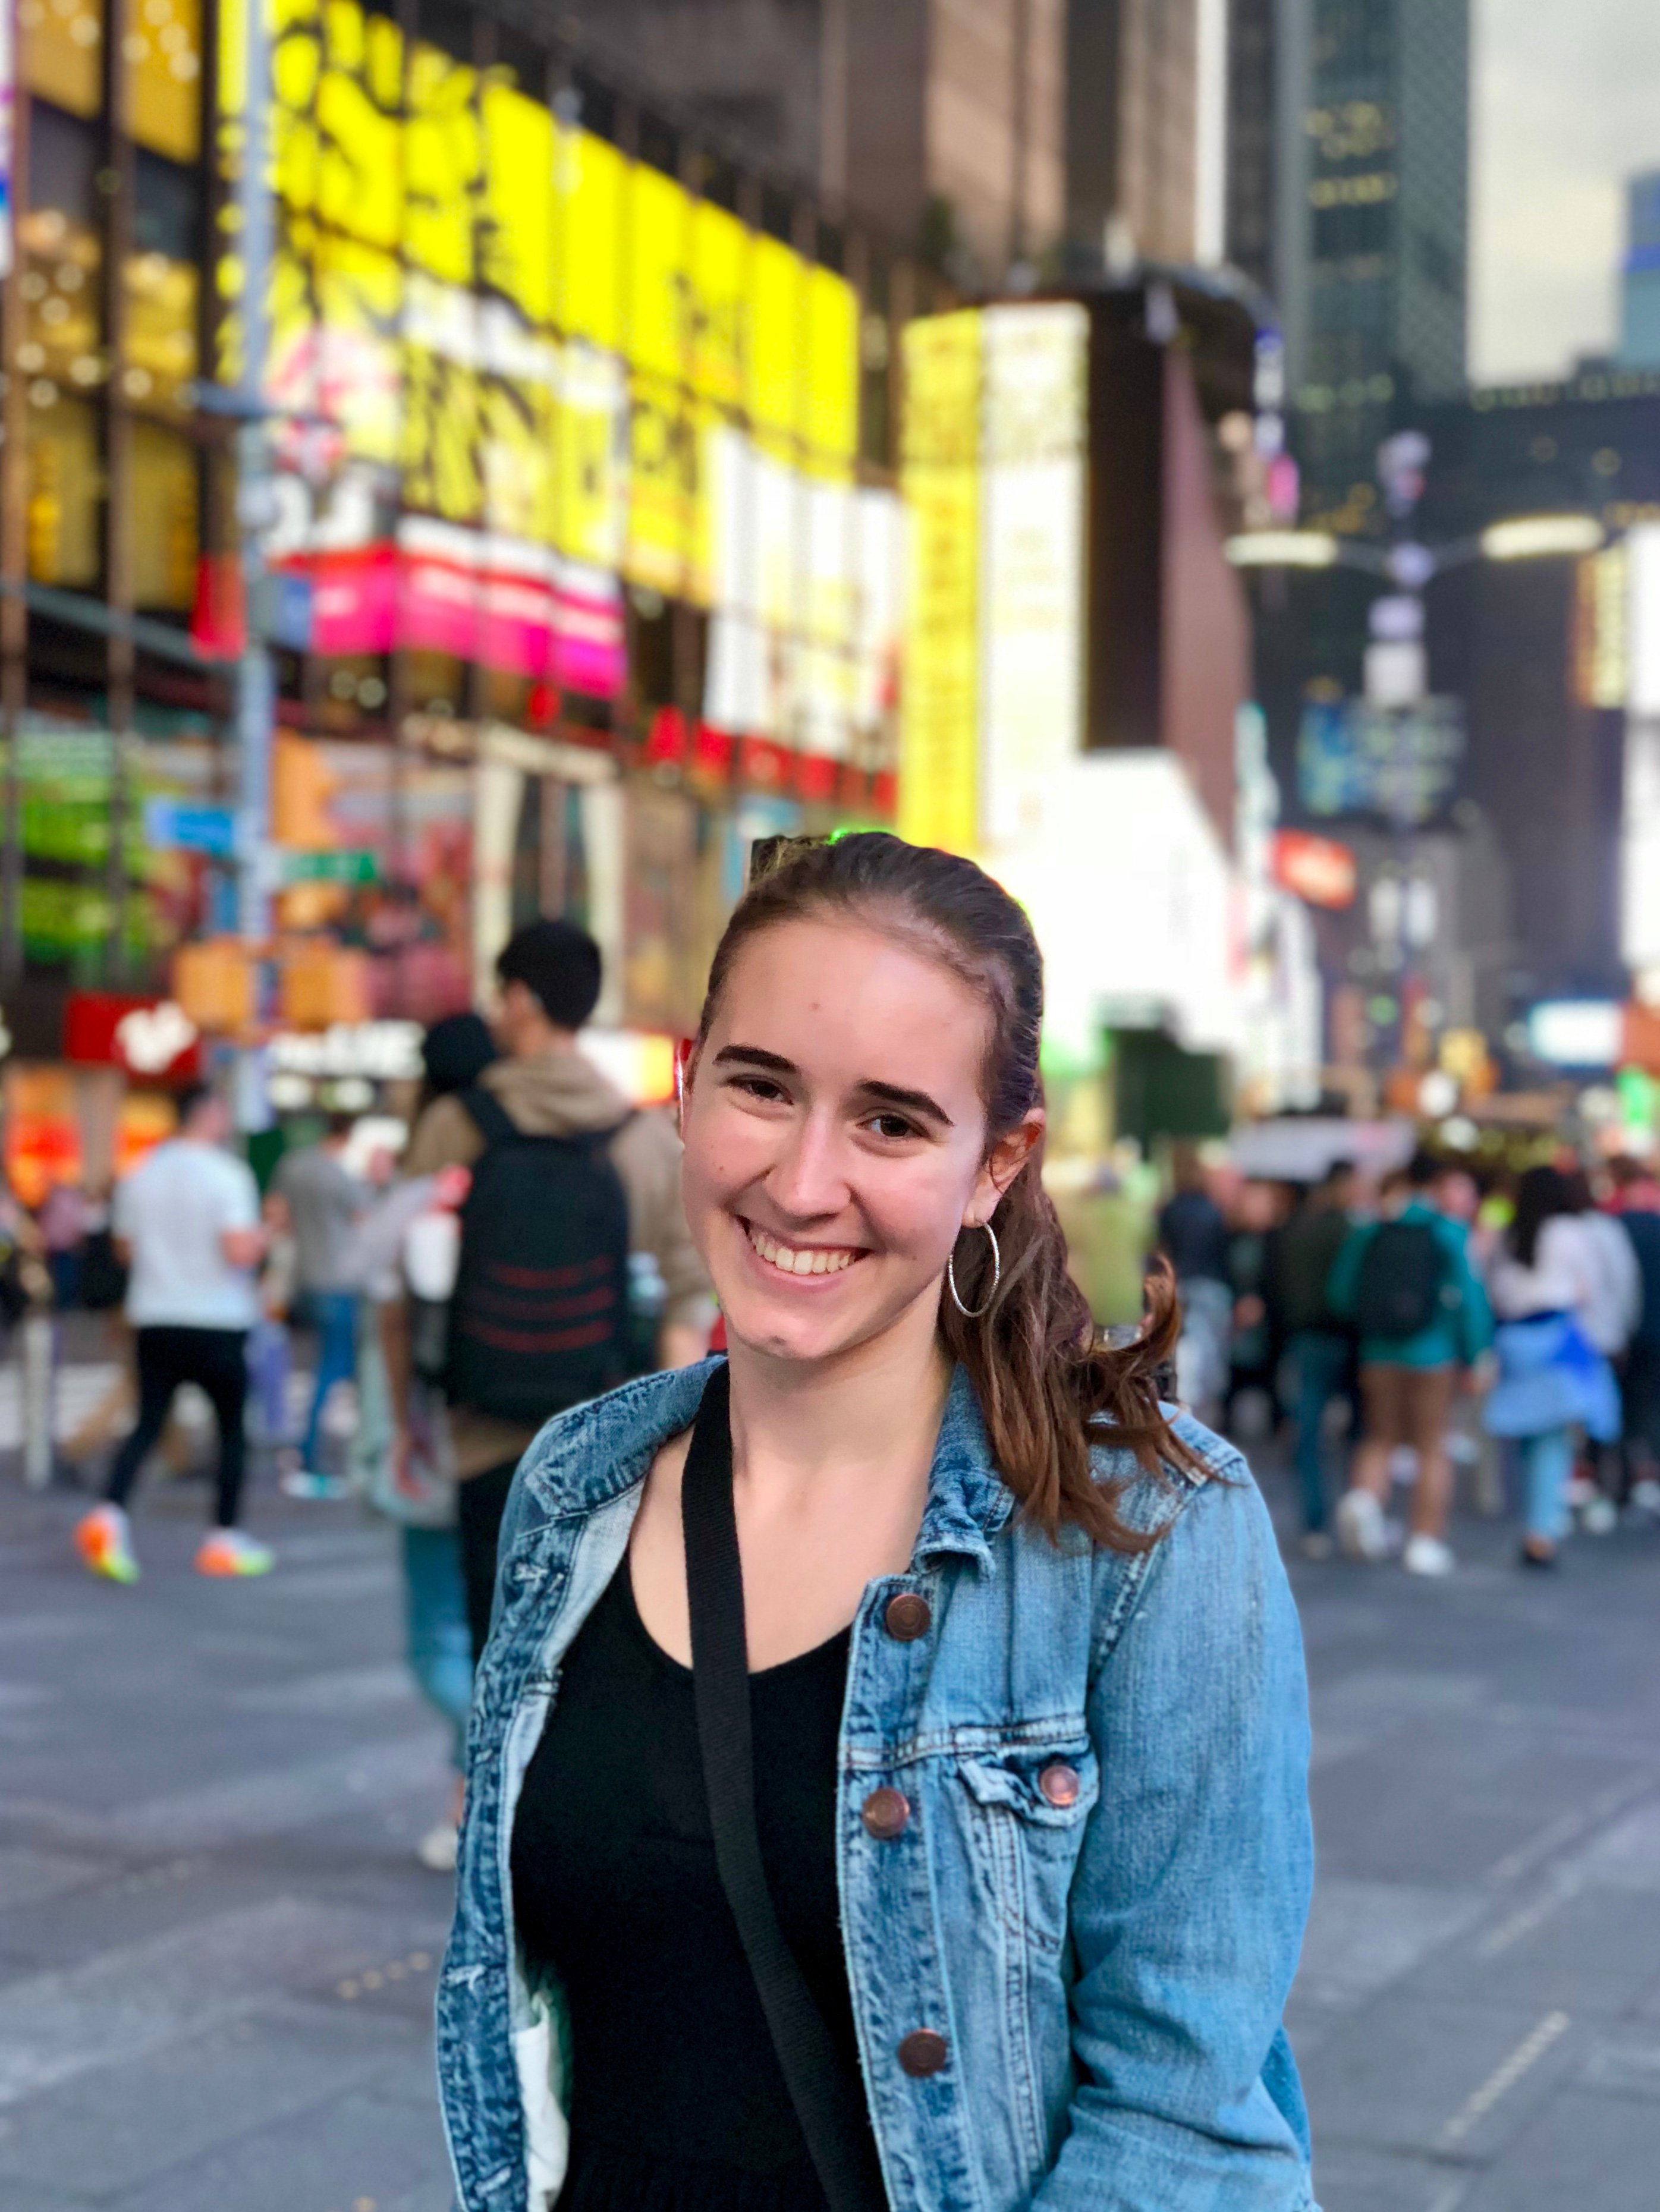 Author Brielle Cayer in New York City